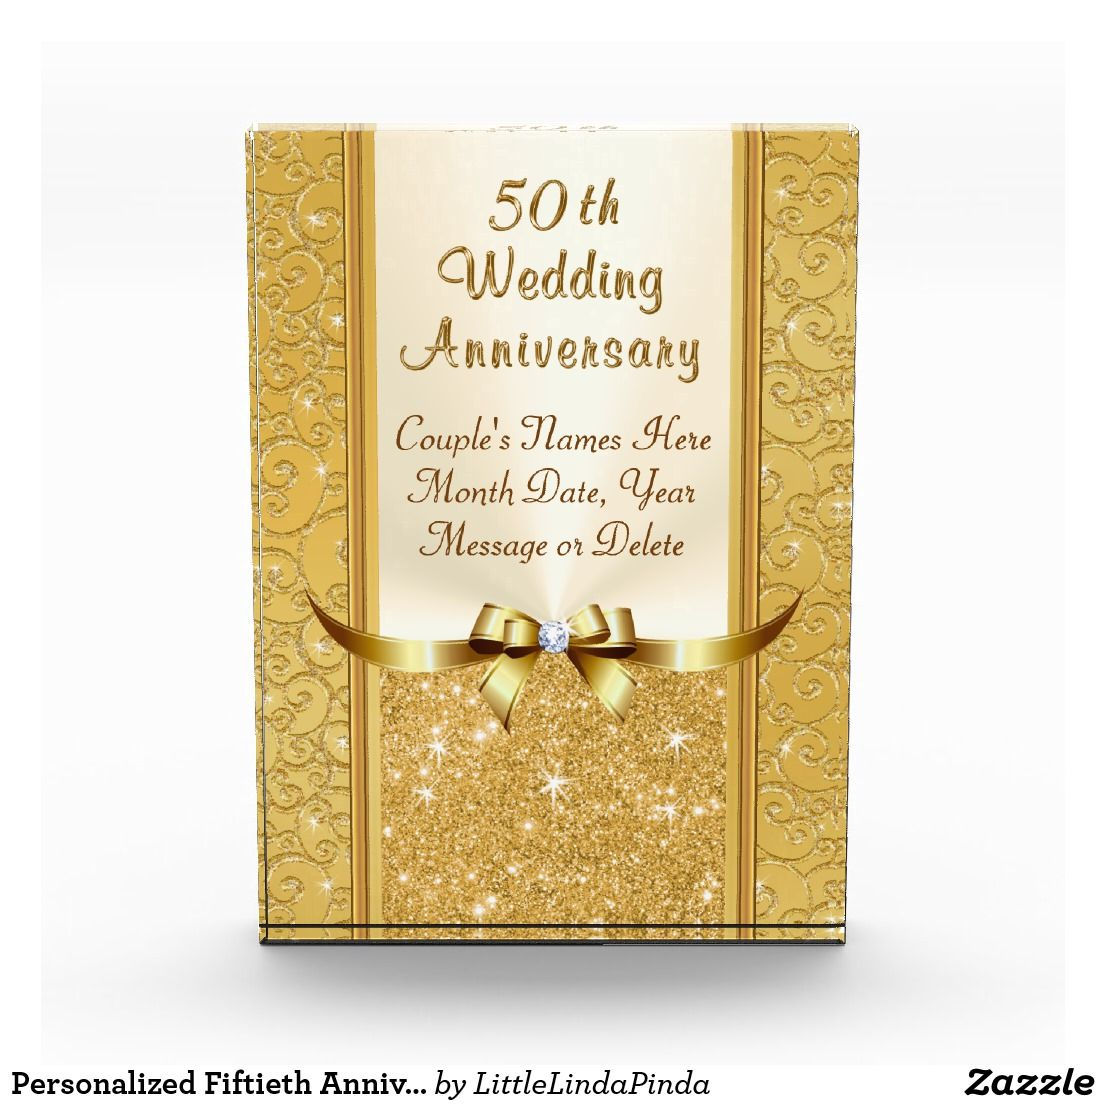 Personalized Fiftieth Anniversary Gifts Stunning Acrylic Award Zazzle Com 50th Anniversary Gifts Fiftieth Anniversary Gifts Anniversary Gifts